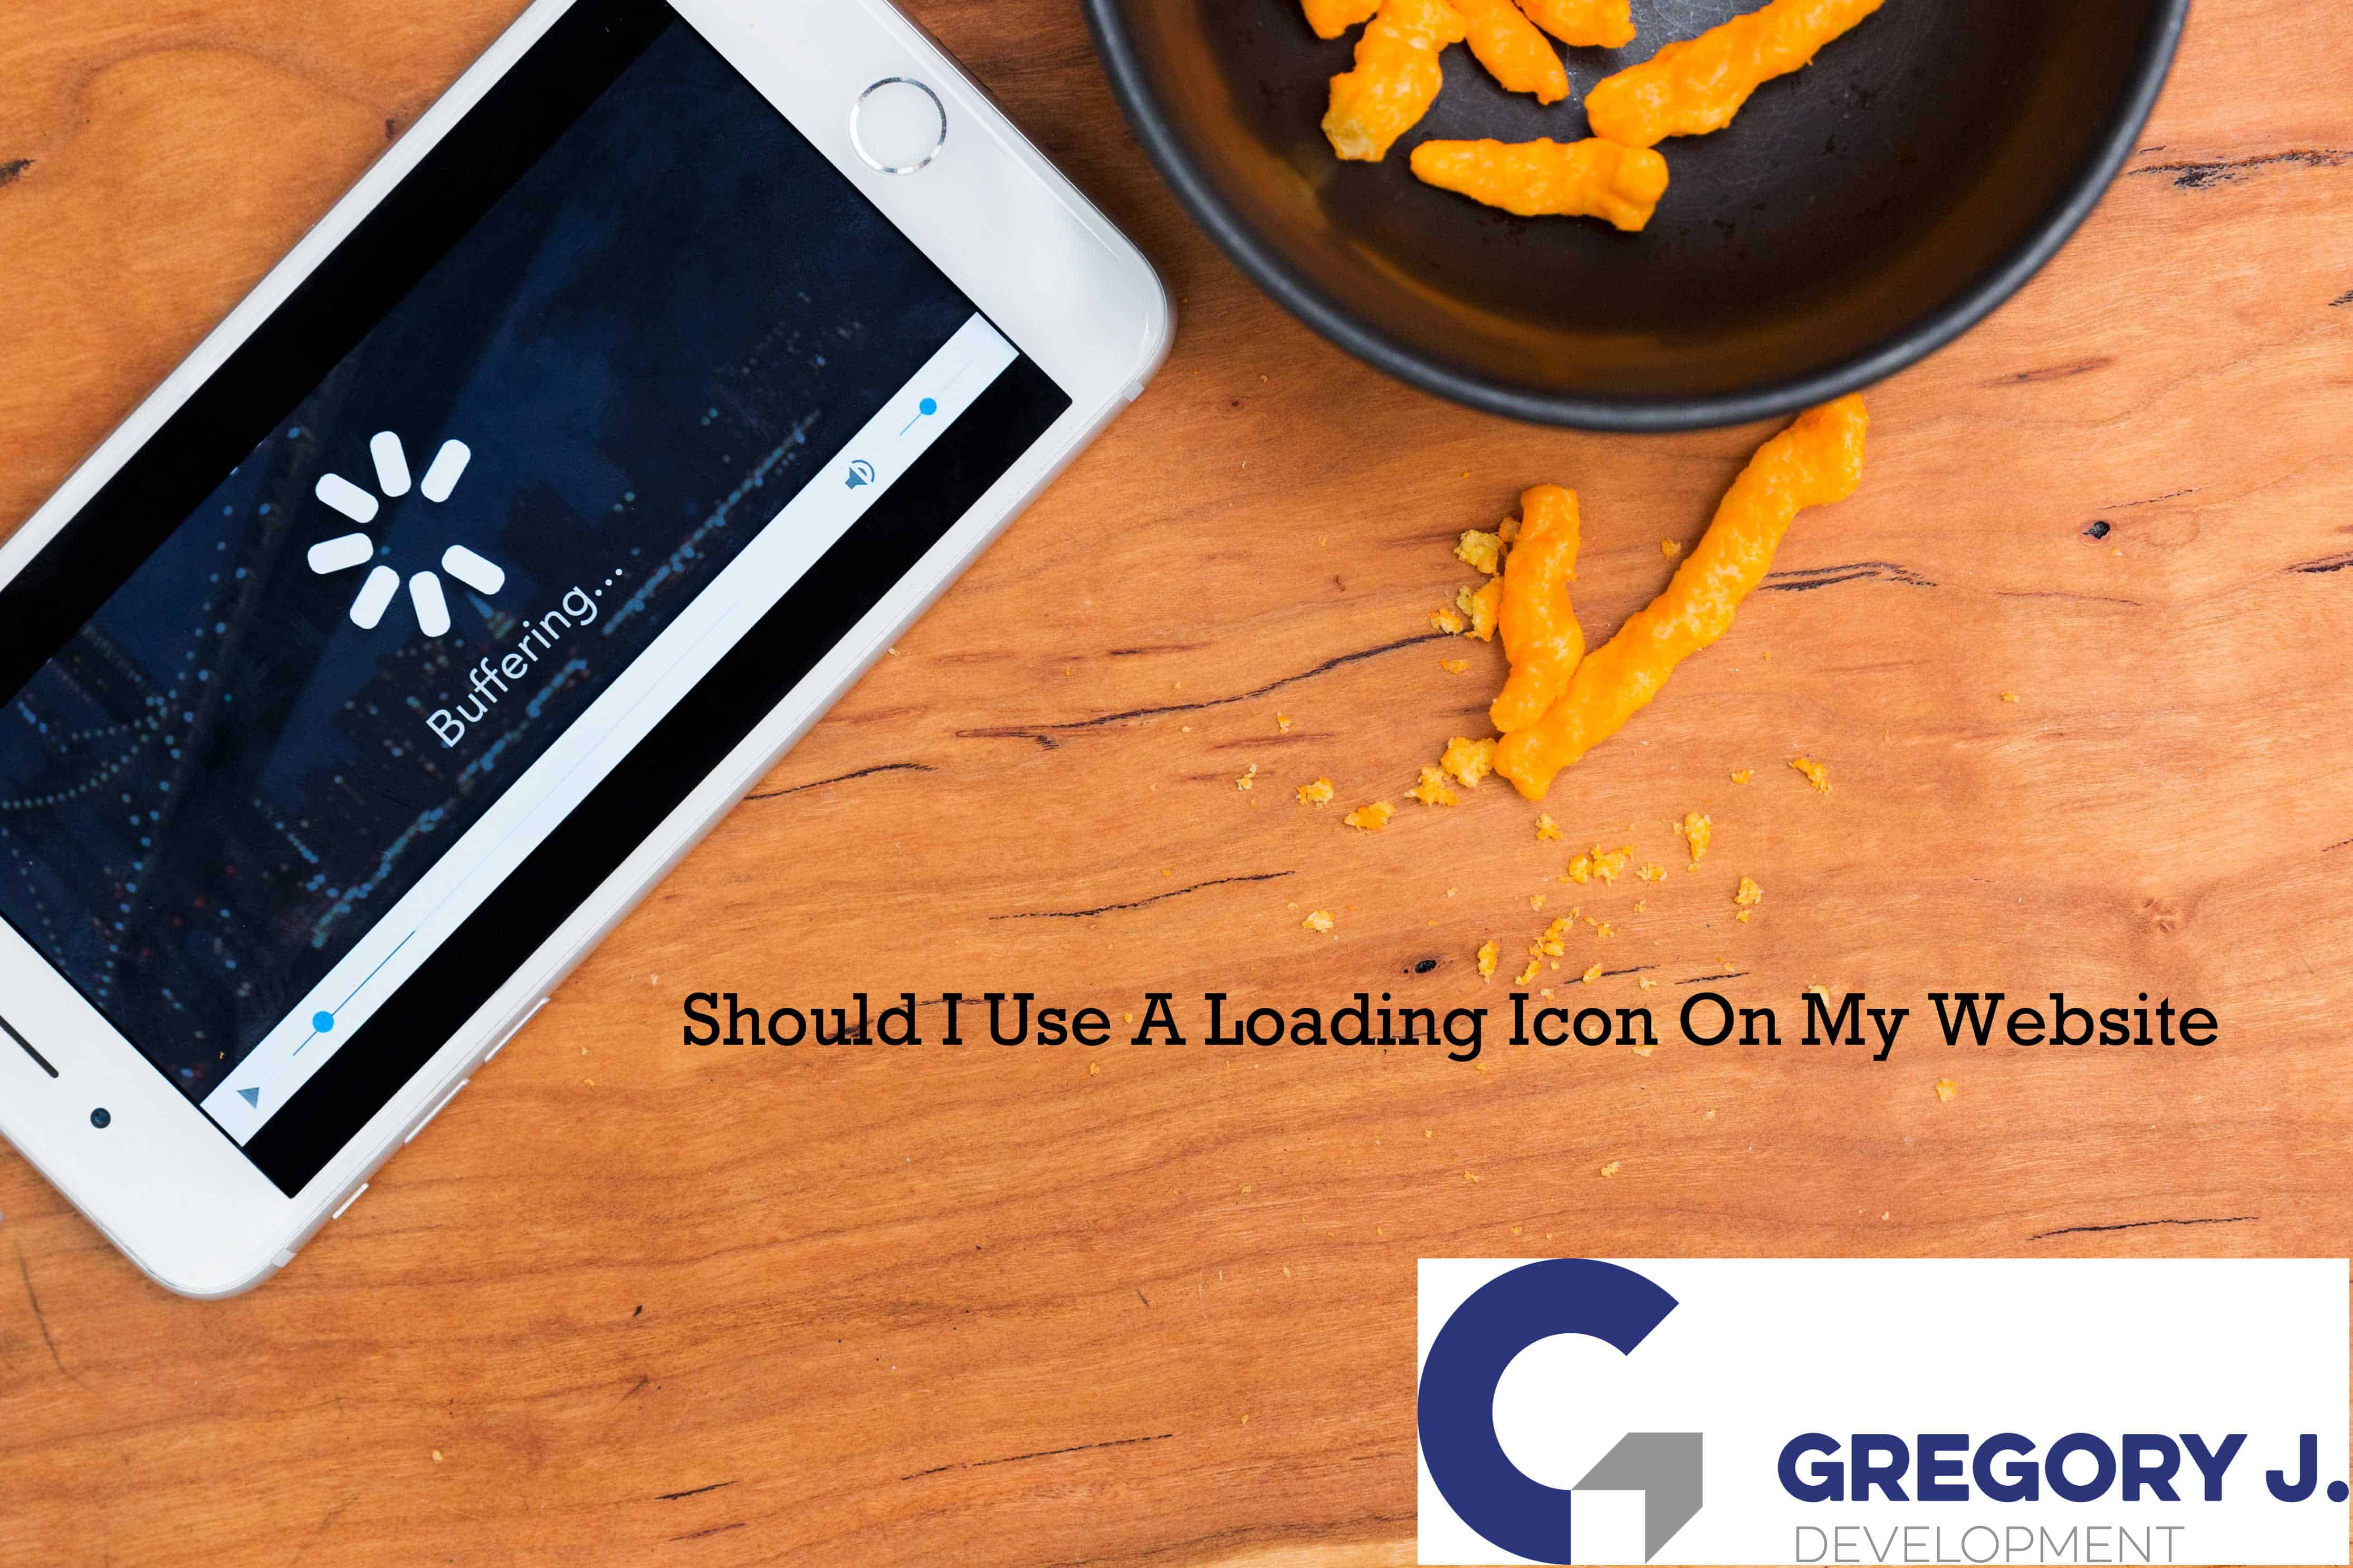 Should I Use A Loading Icon On My Website